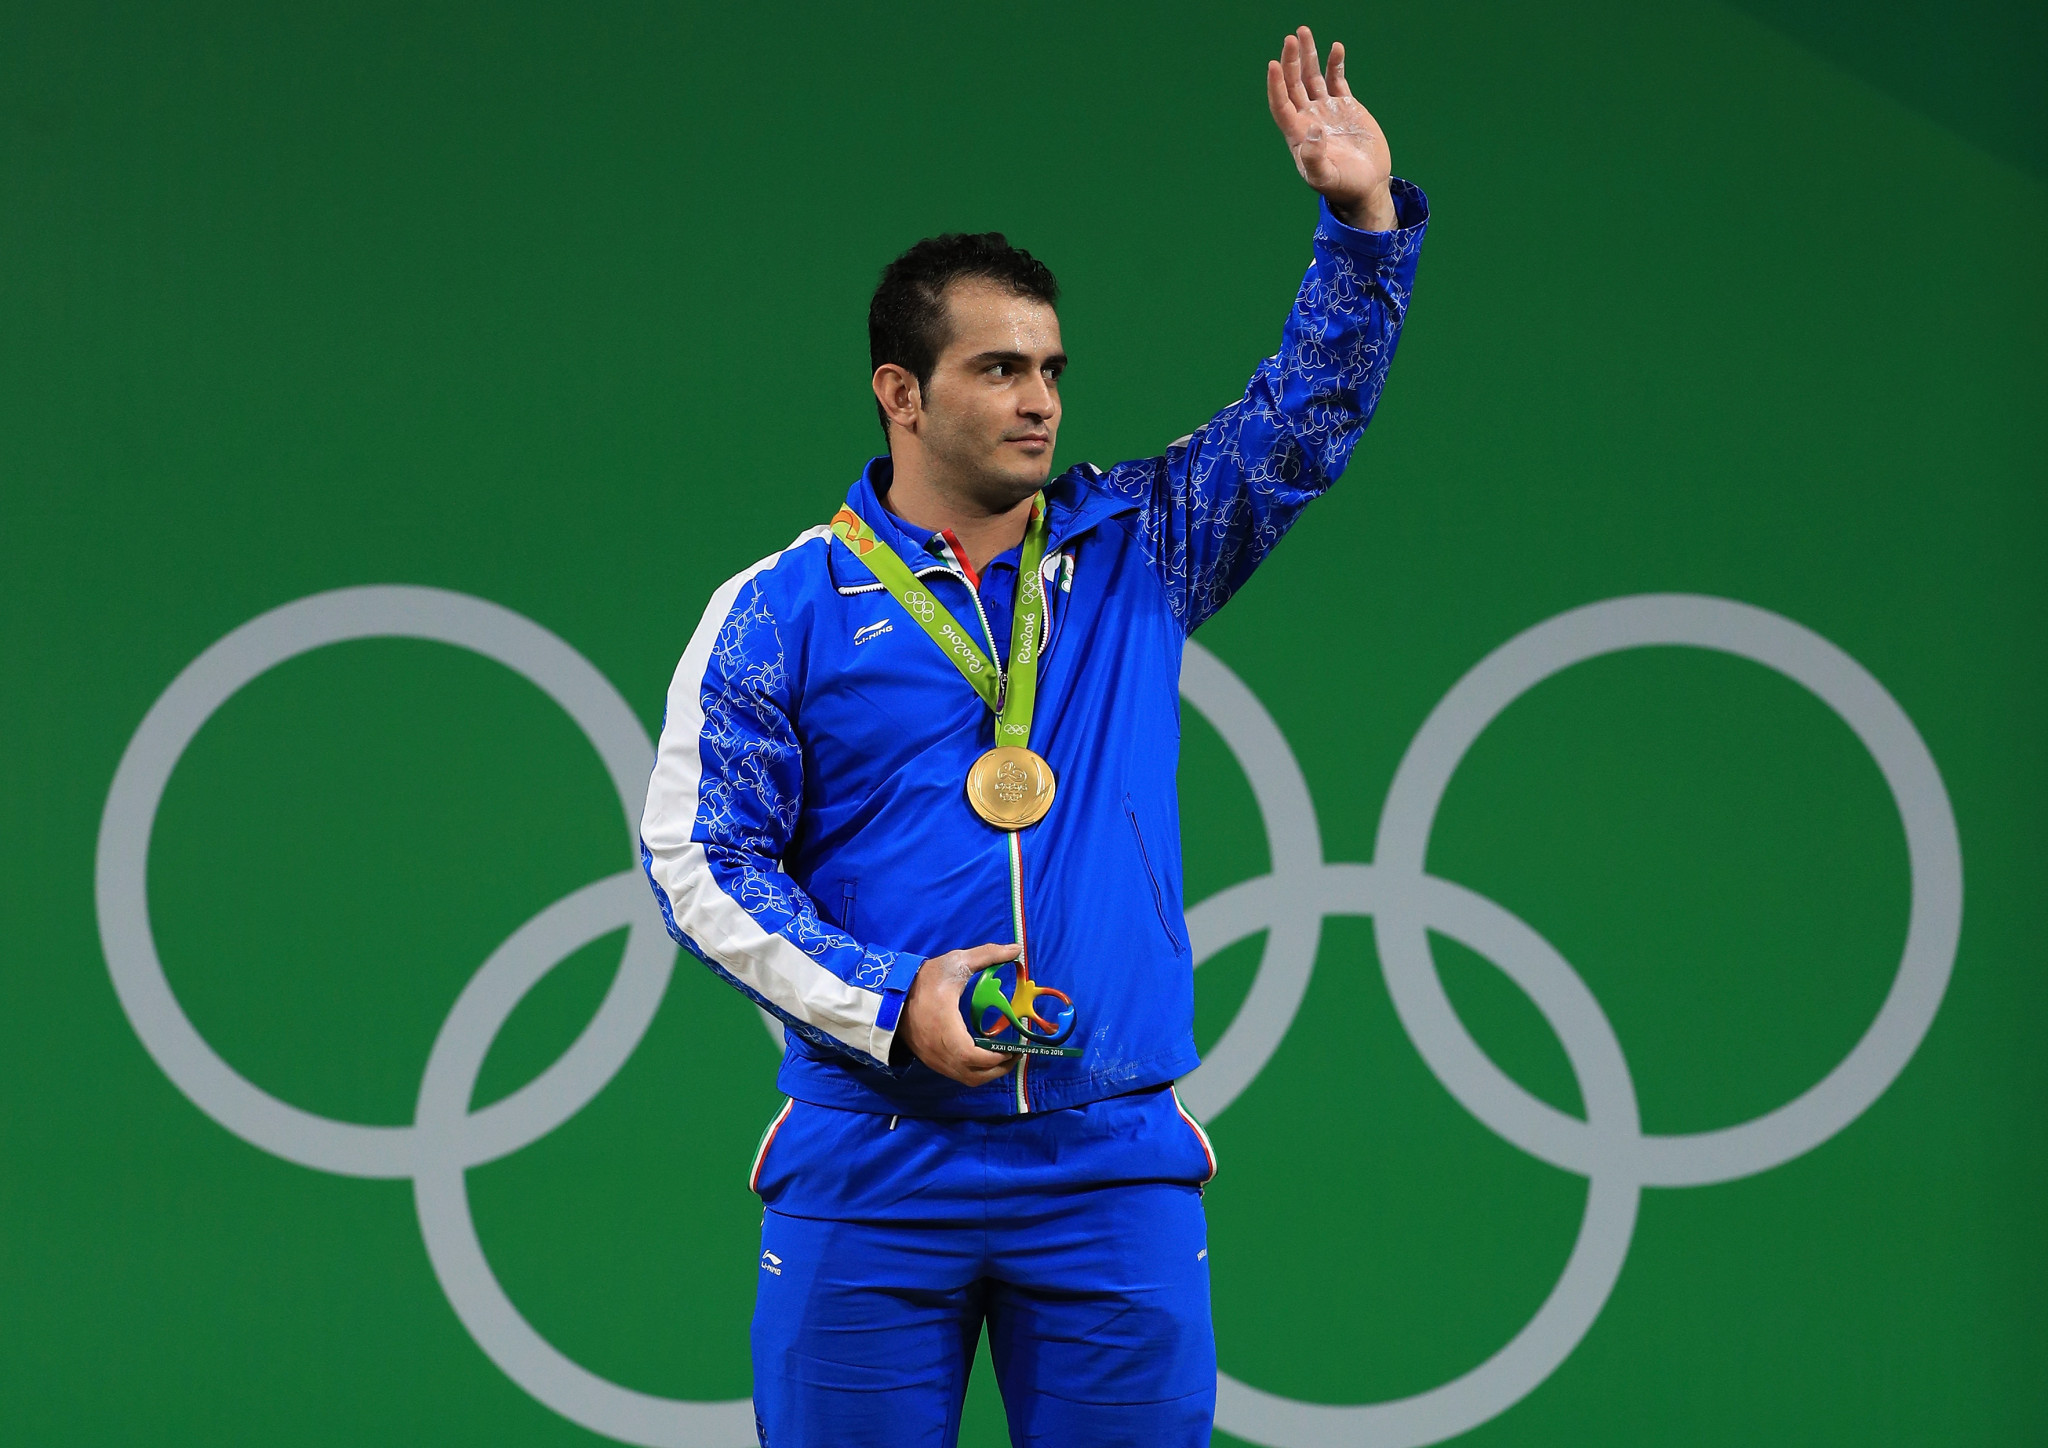 Rio 2016 champion Sohrab Moradi of Iran bid a sad farewell to the sport after failing to make a total in a Tokyo 2020 qualifying competition in Colombia ©Getty Images